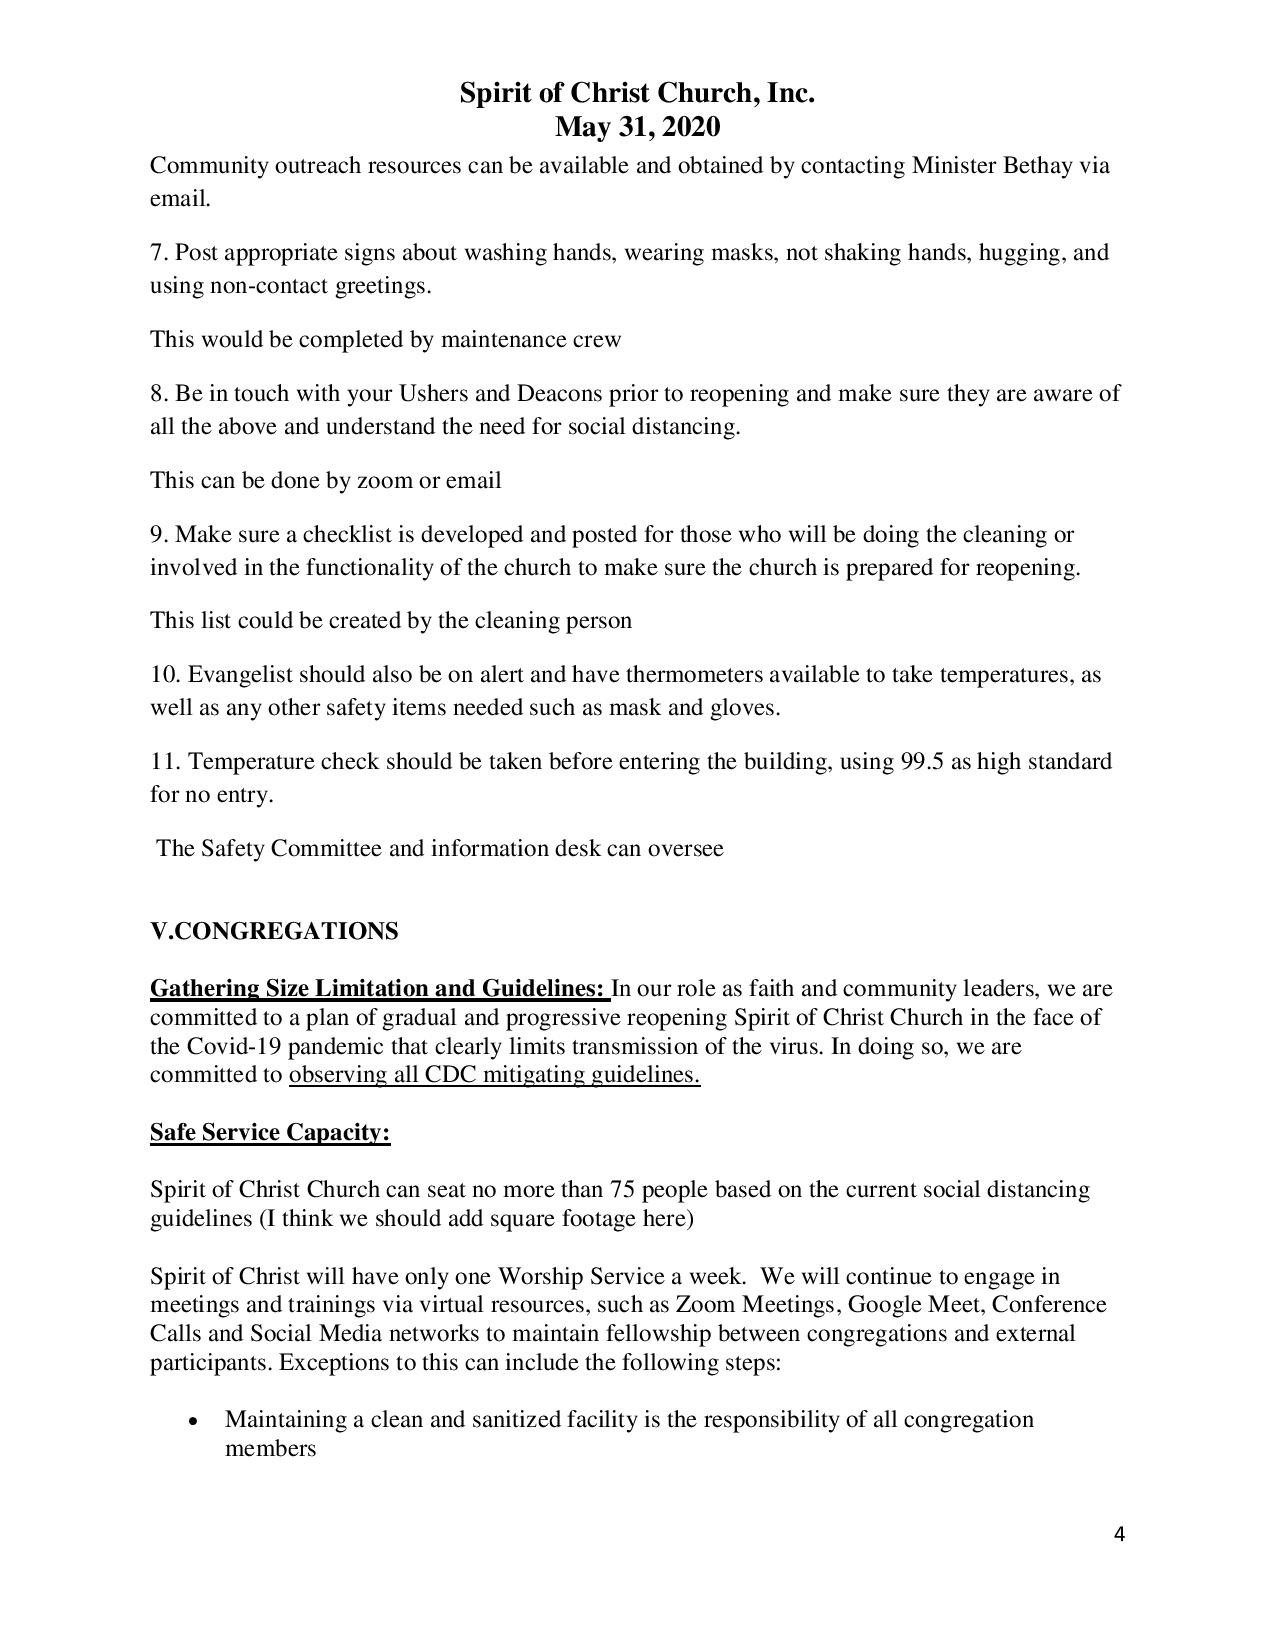 COVID-19_SAFELY REOPENING HOUSES OF WORSHIP GUIDELINE AND SUMMARY-page-004